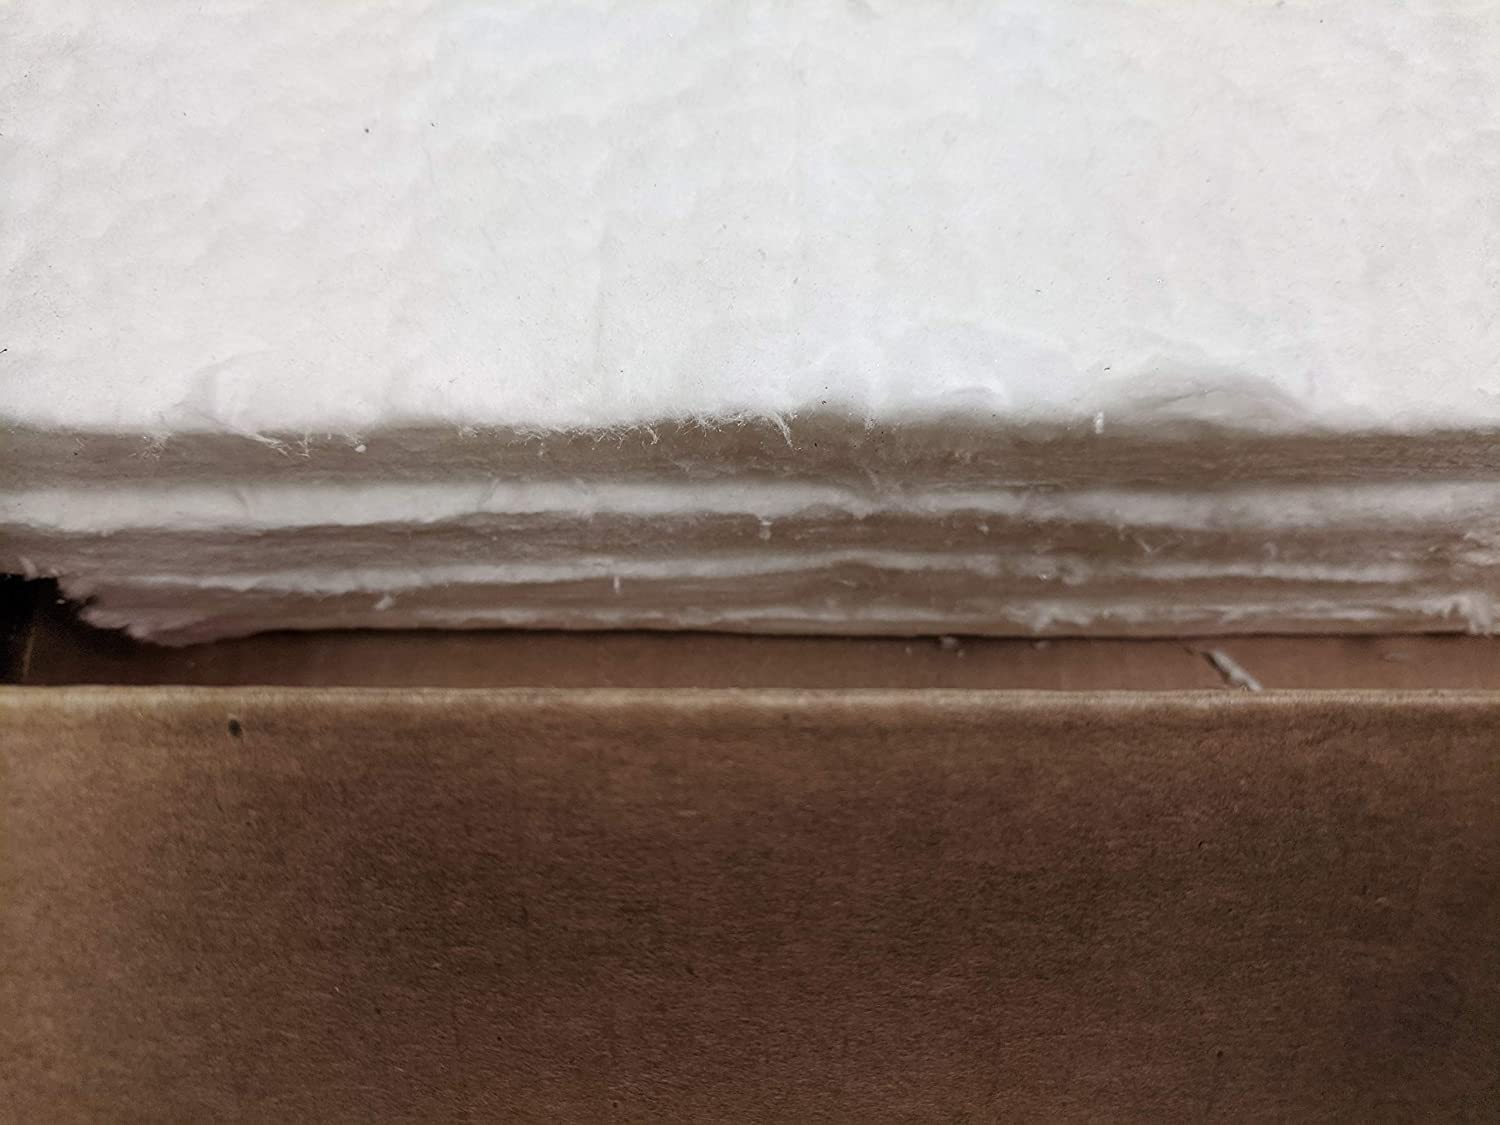 Forges Kilns 4 Each Fireplaces /& More - 12x24x1 Ceramic Fiber Blanket Insulation 6# 2300F for Wood Stoves Pizza Ovens